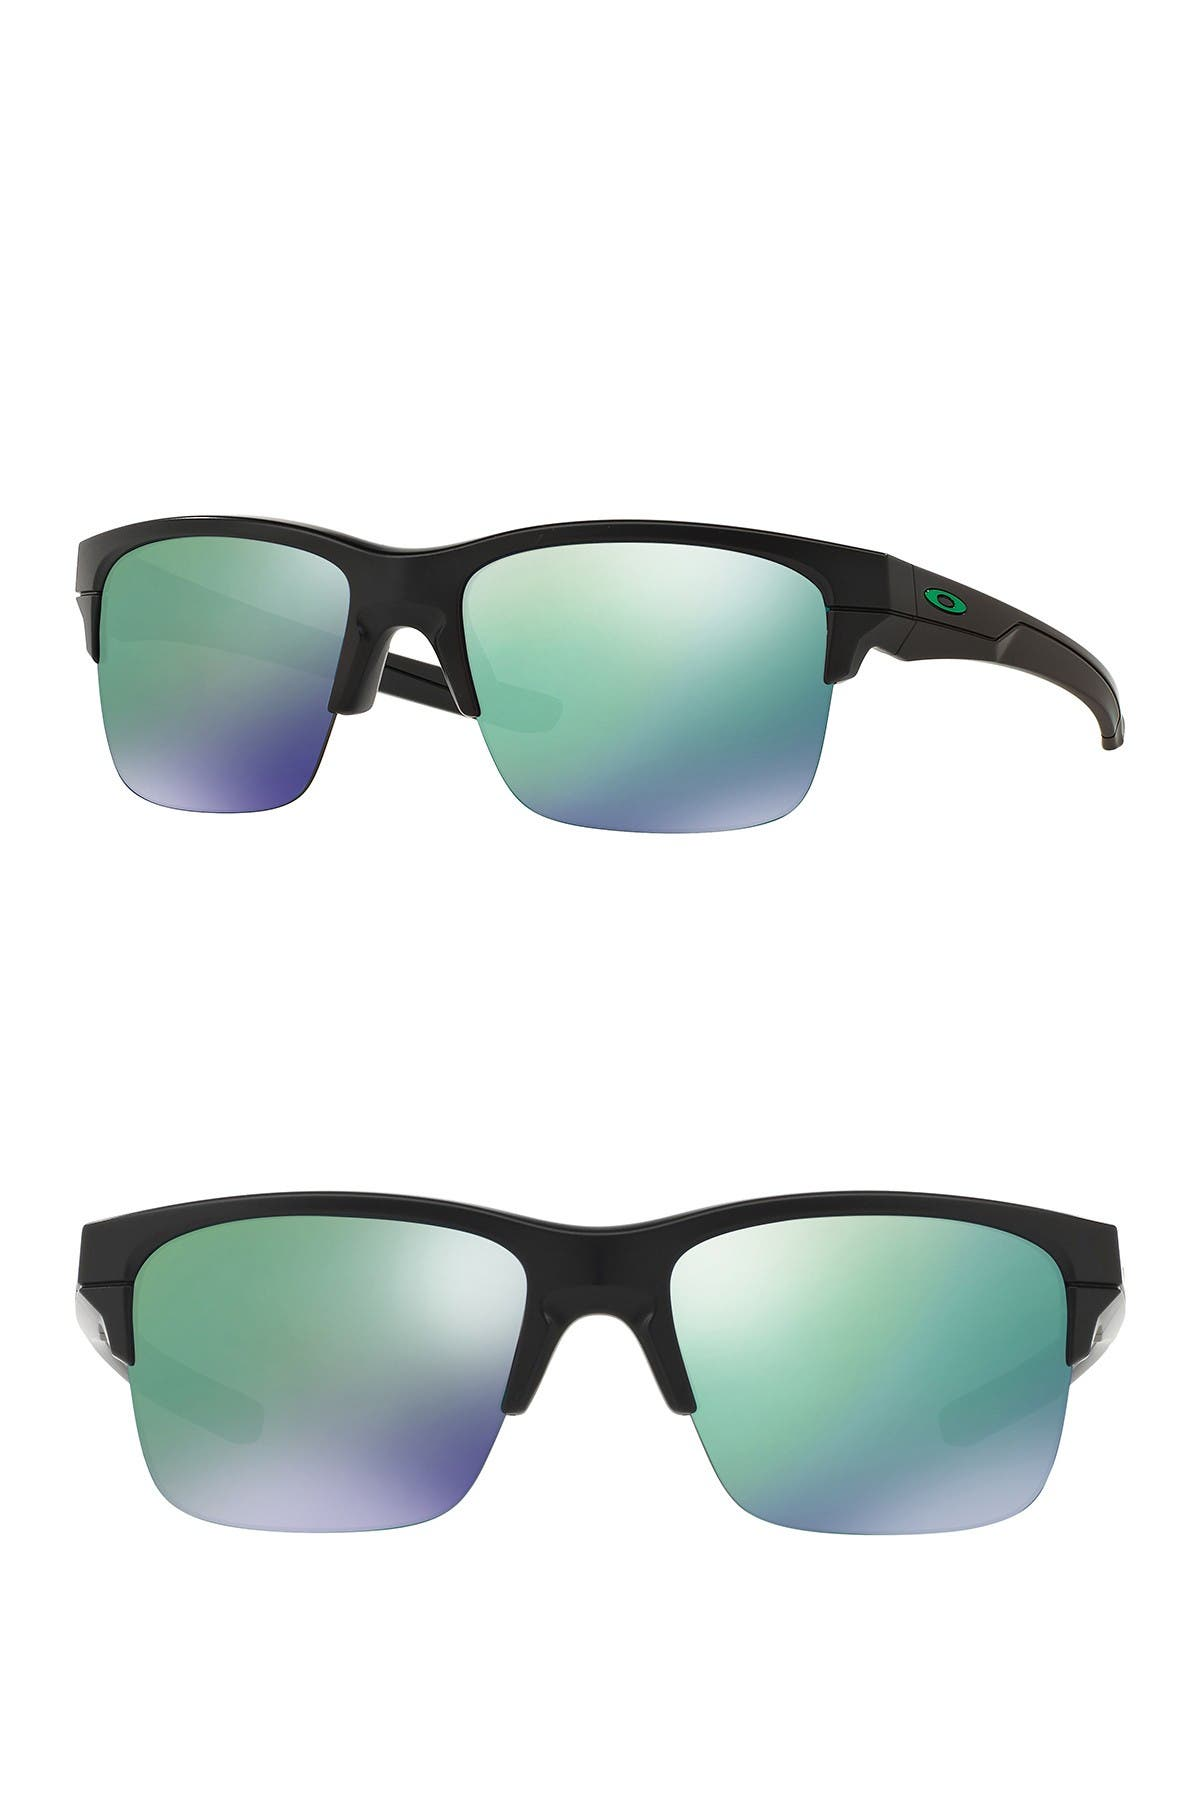 Image of Oakley Thinlink 63mm Sunglasses